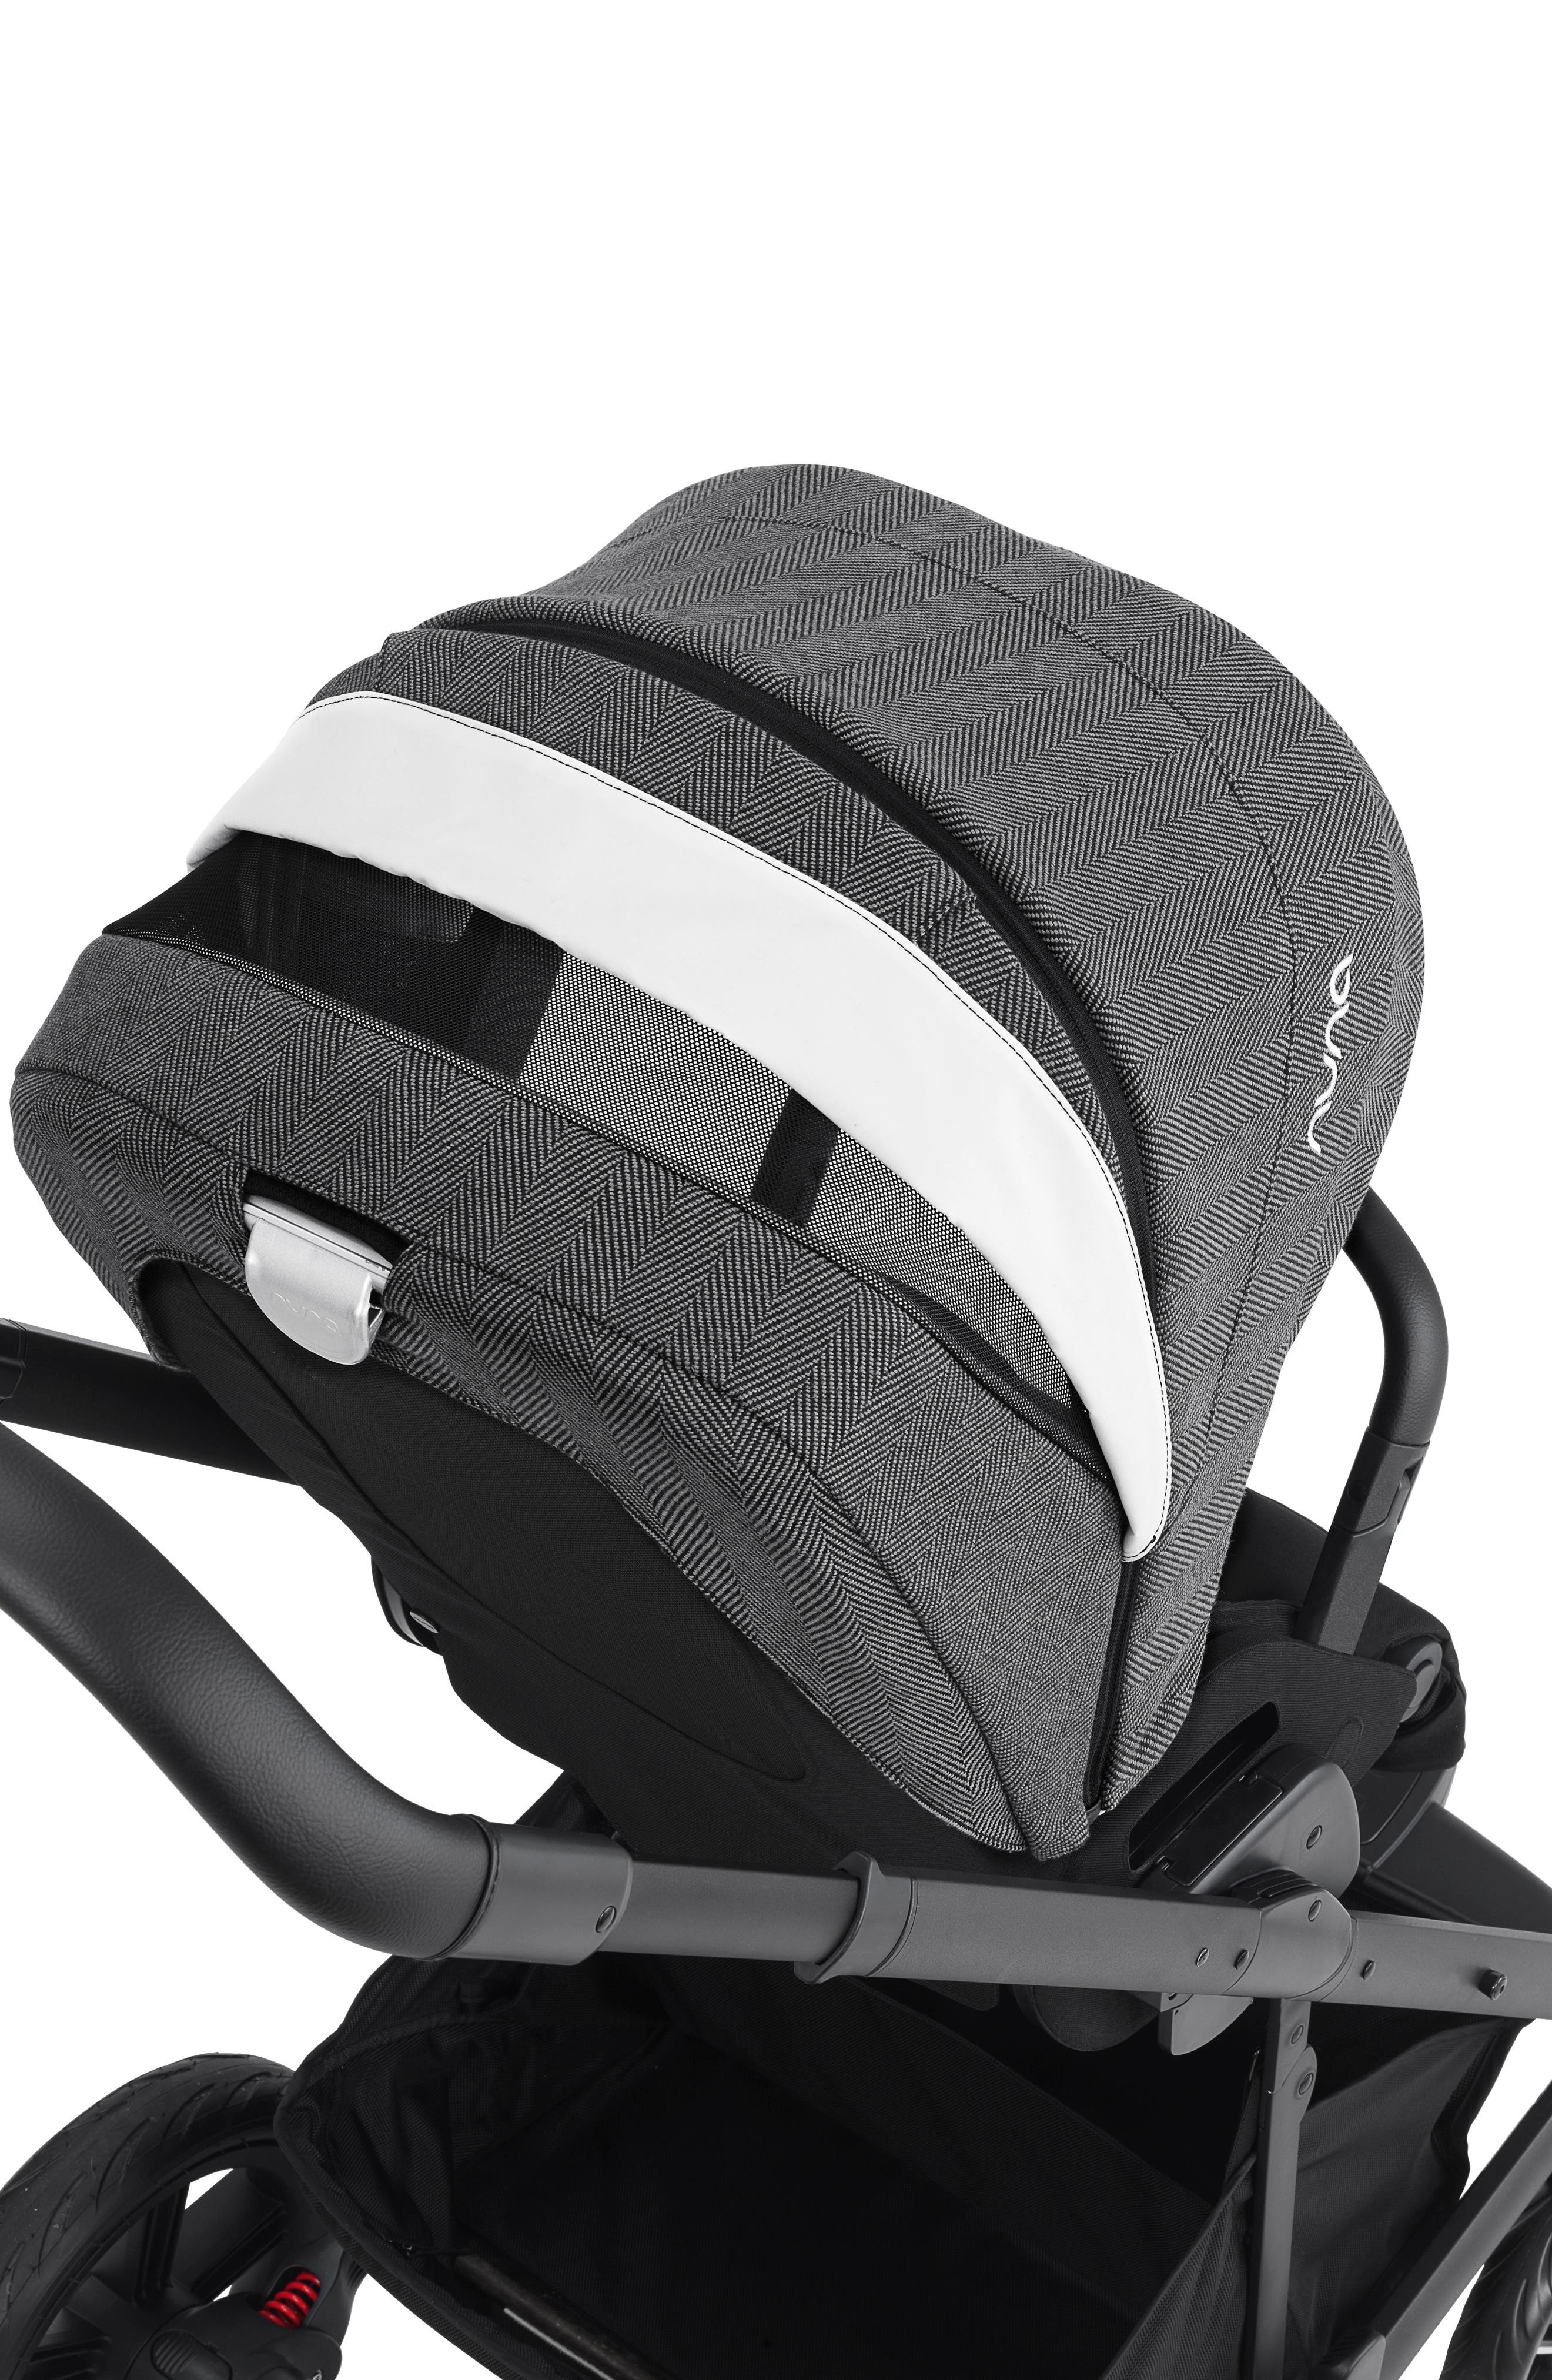 2019 MIXX<sup>™</sup> Stroller & PIPA<sup>™</sup> Lite LX Infant Car Seat Set Travel System,                             Alternate thumbnail 8, color,                             VERONA CAVIAR